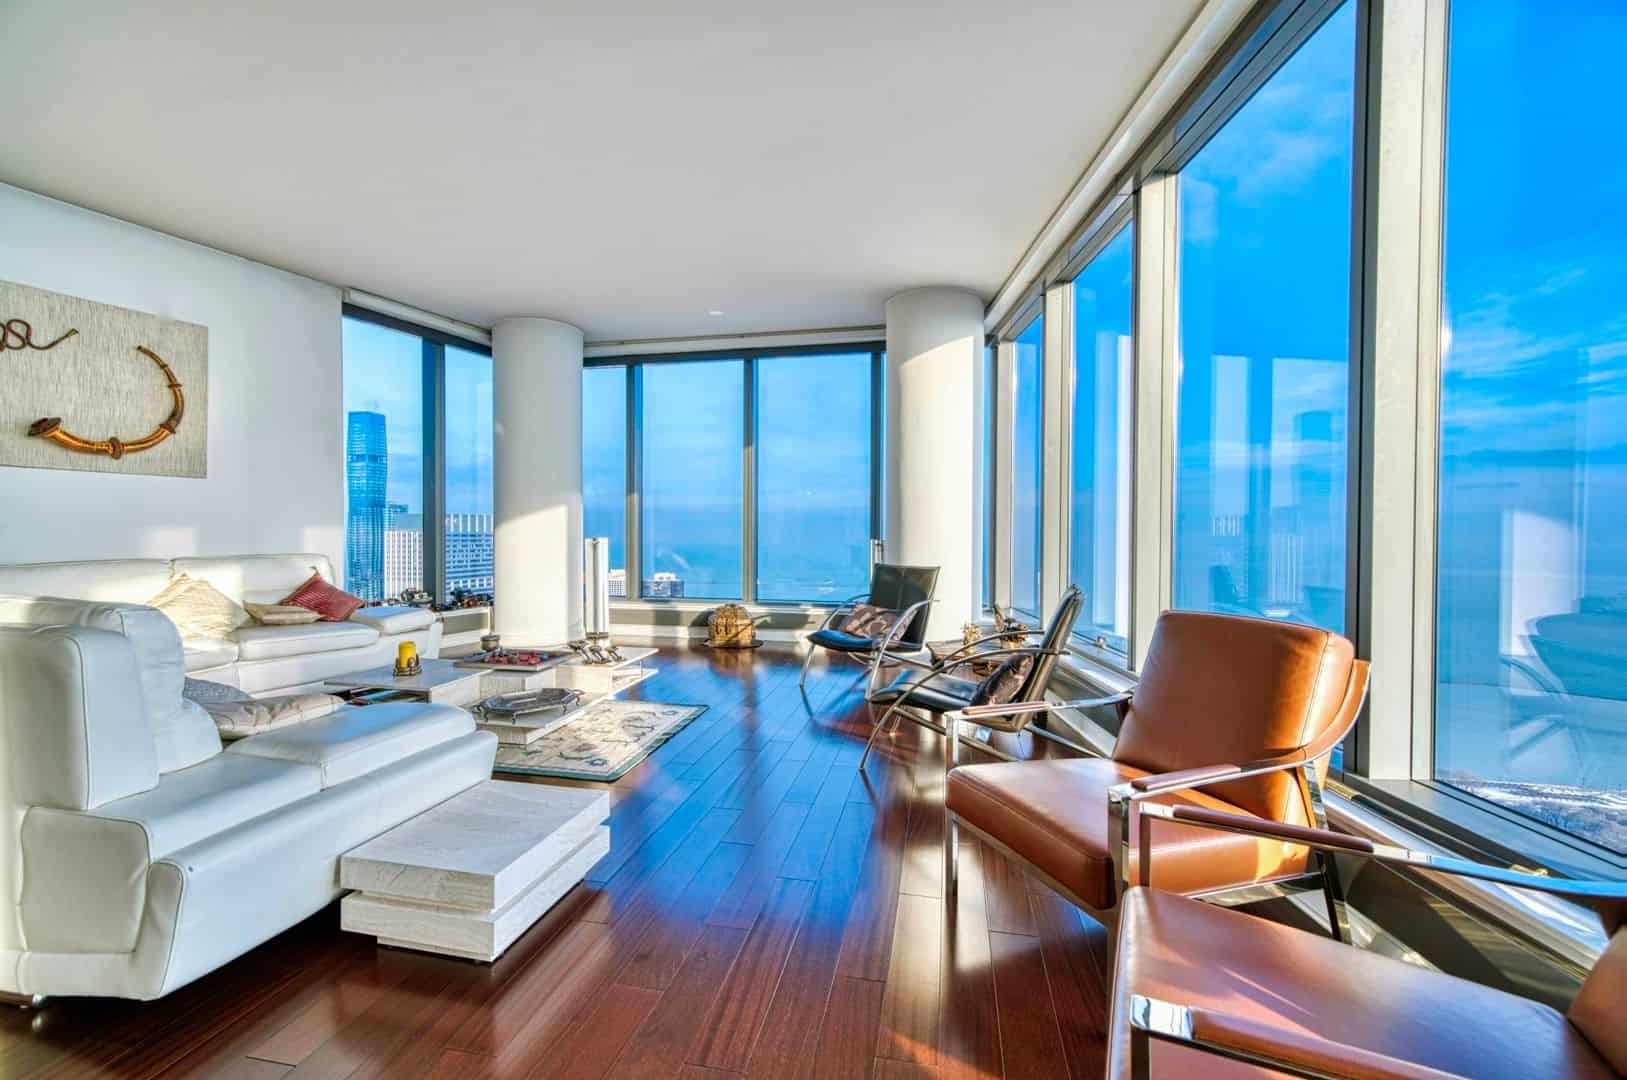 Spectacular Downtown Chicago Penthouse Rental - Living Room 1